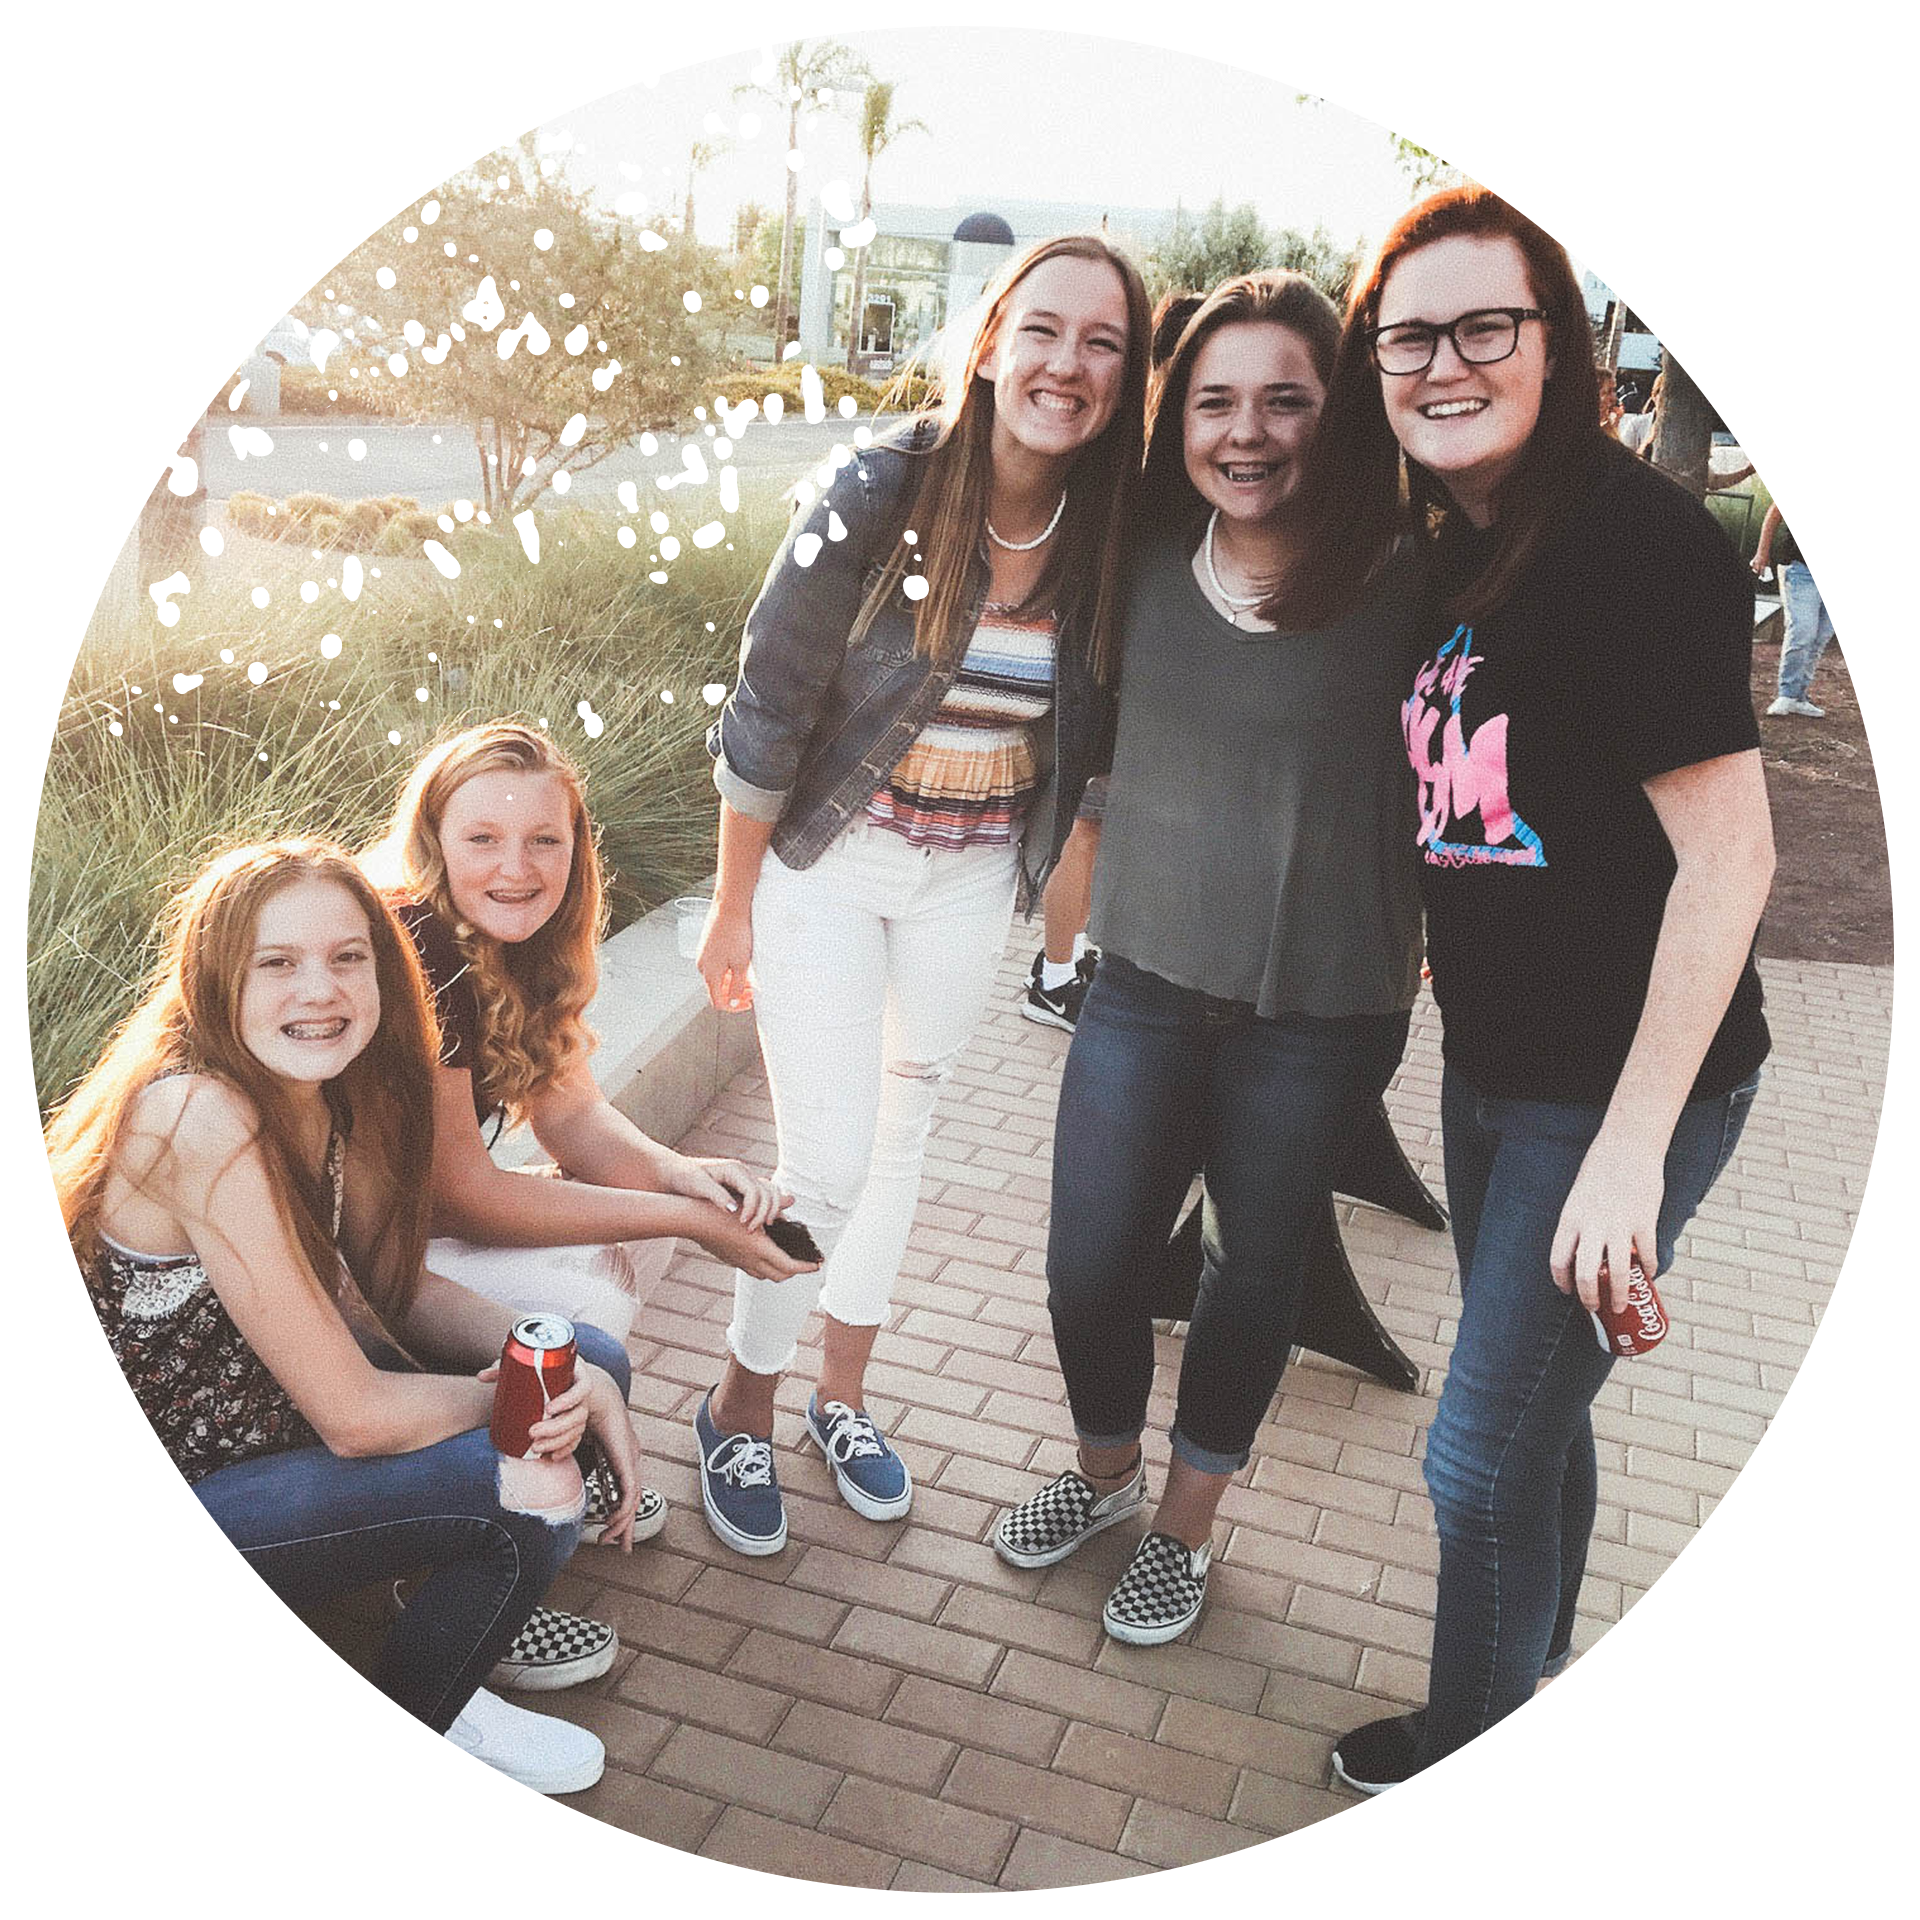 High School Ministry Gatherings - We seek to create environments where students can connect to God and each other, explore the big questions in life, and use their gifts and passions to influence the world.